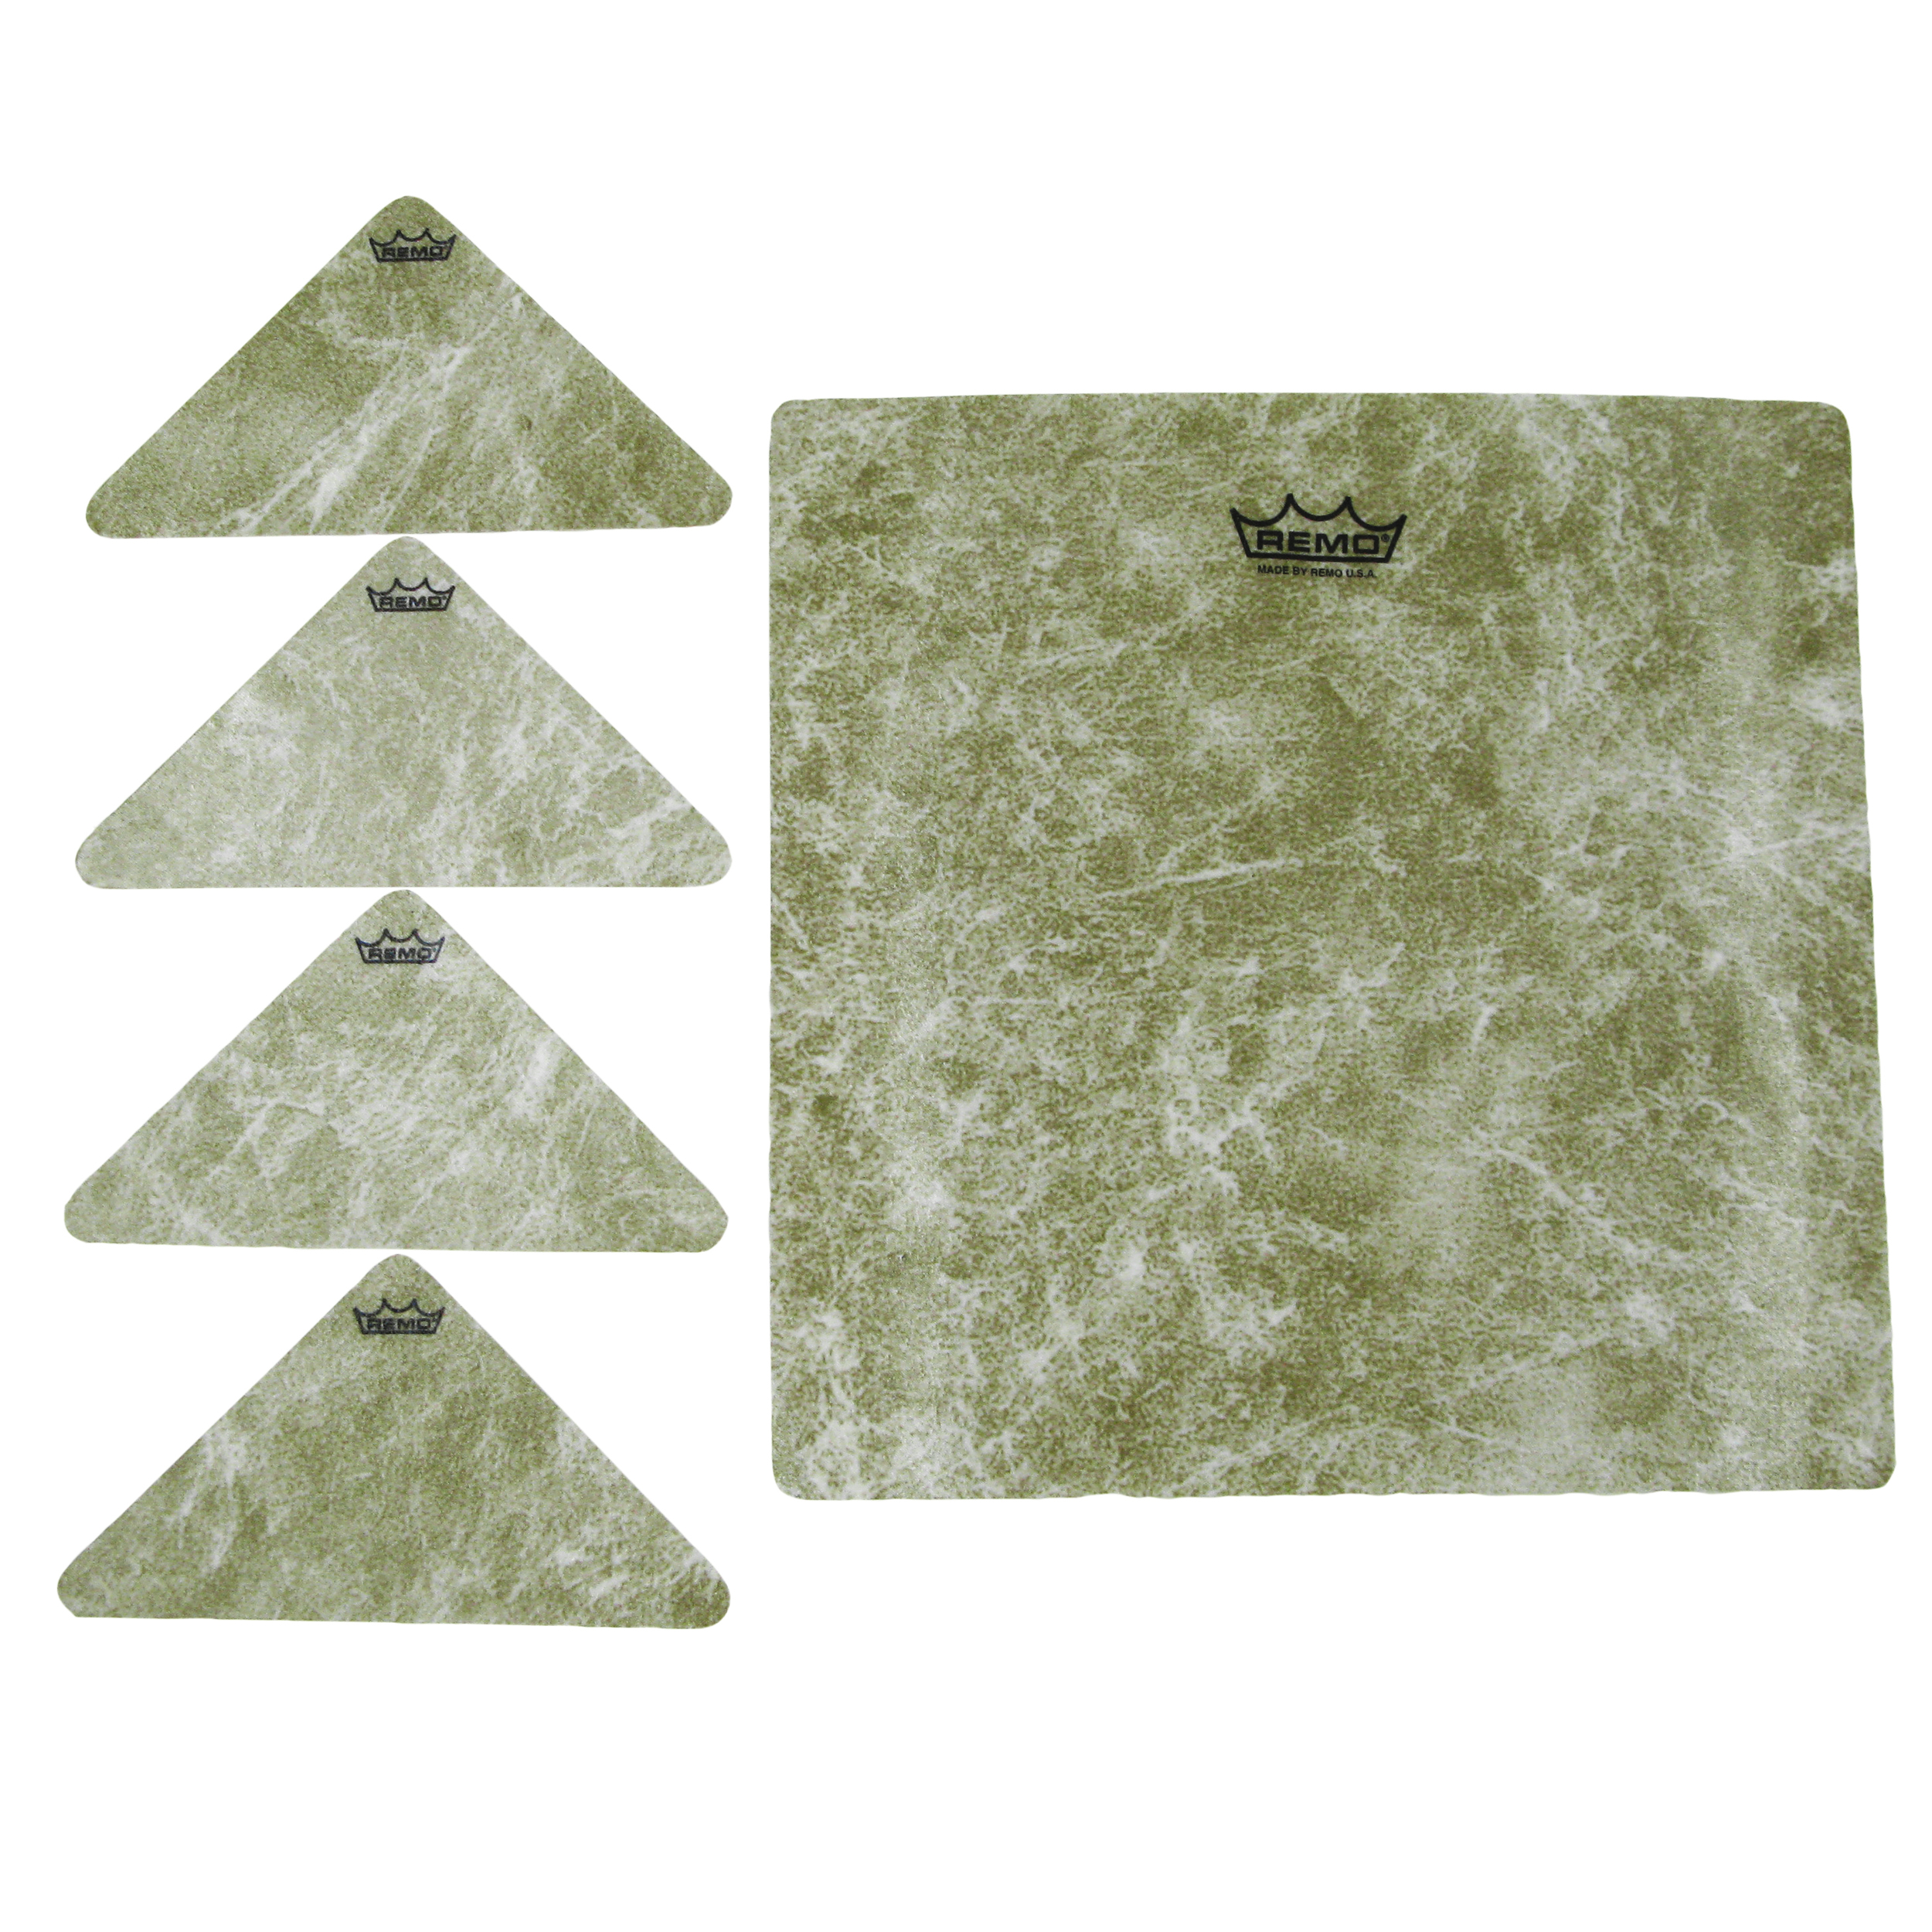 "Remo 9.25"" Square and 4 Small Texture Targets"